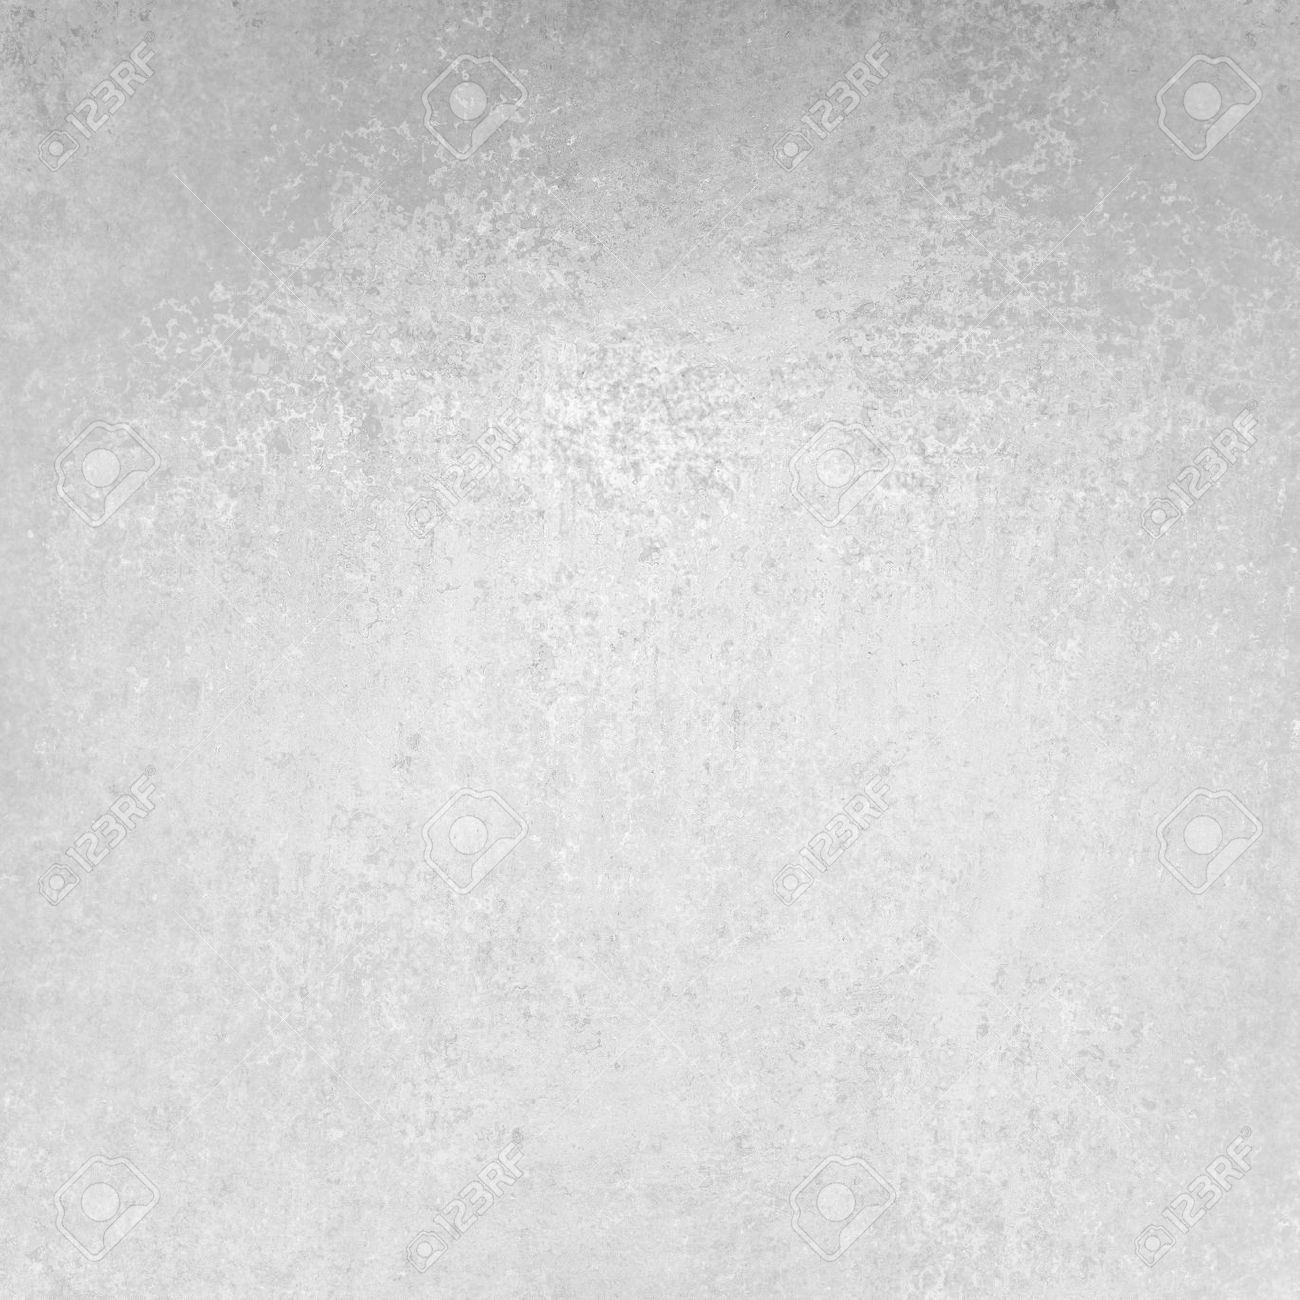 White Gray Background Image Distressed Sponge Grunge Vintage